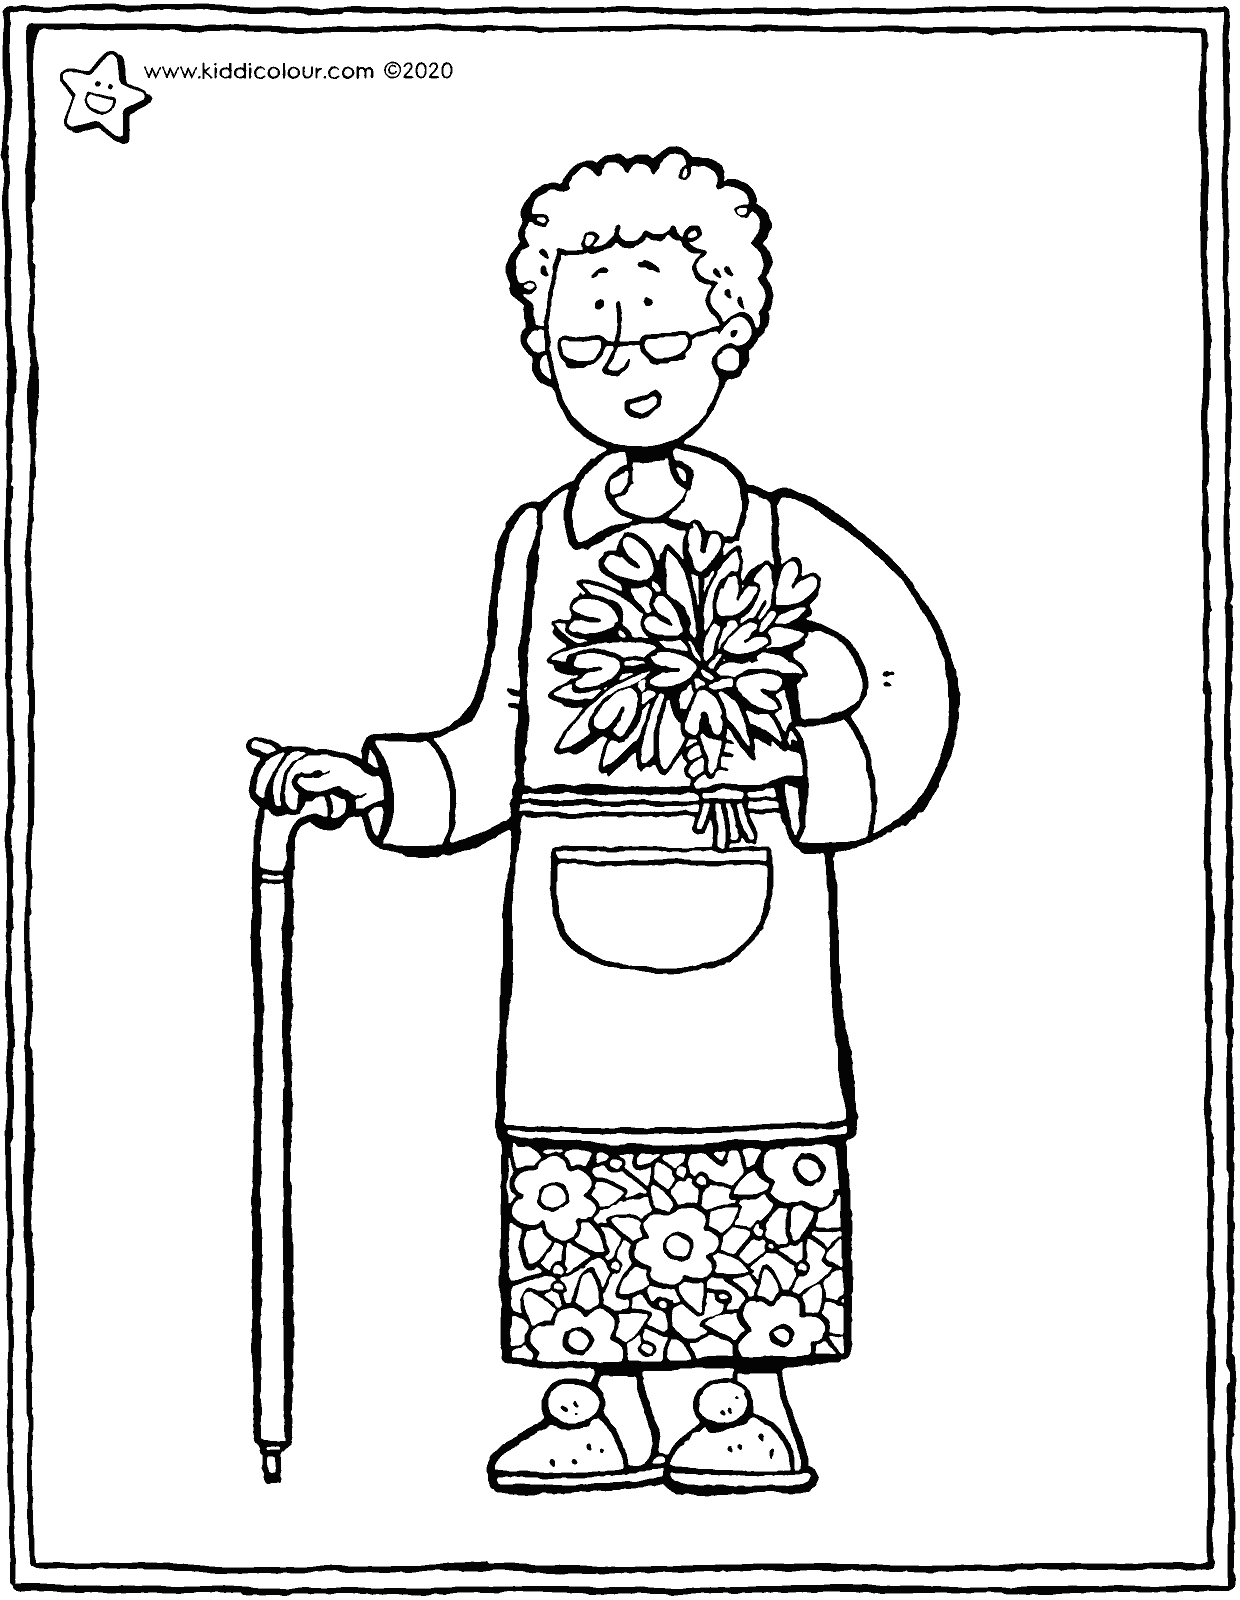 darling granny colouring page drawing picture 01V